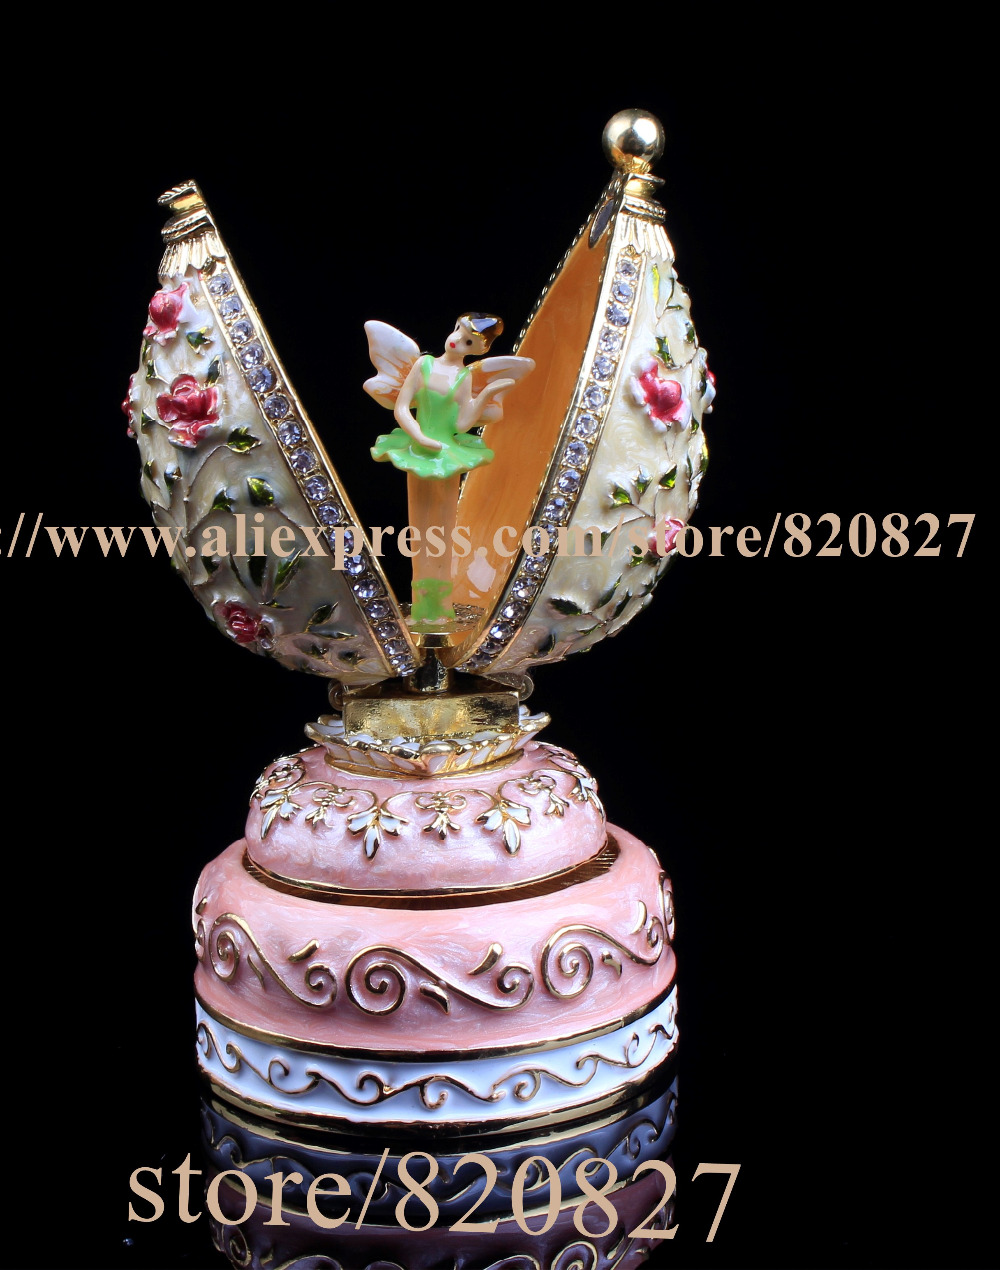 Vintage Angel Egg-Shaped Music Box Faberge Style Egg Pewter Figurine, Musical Jewelry with Dance inside